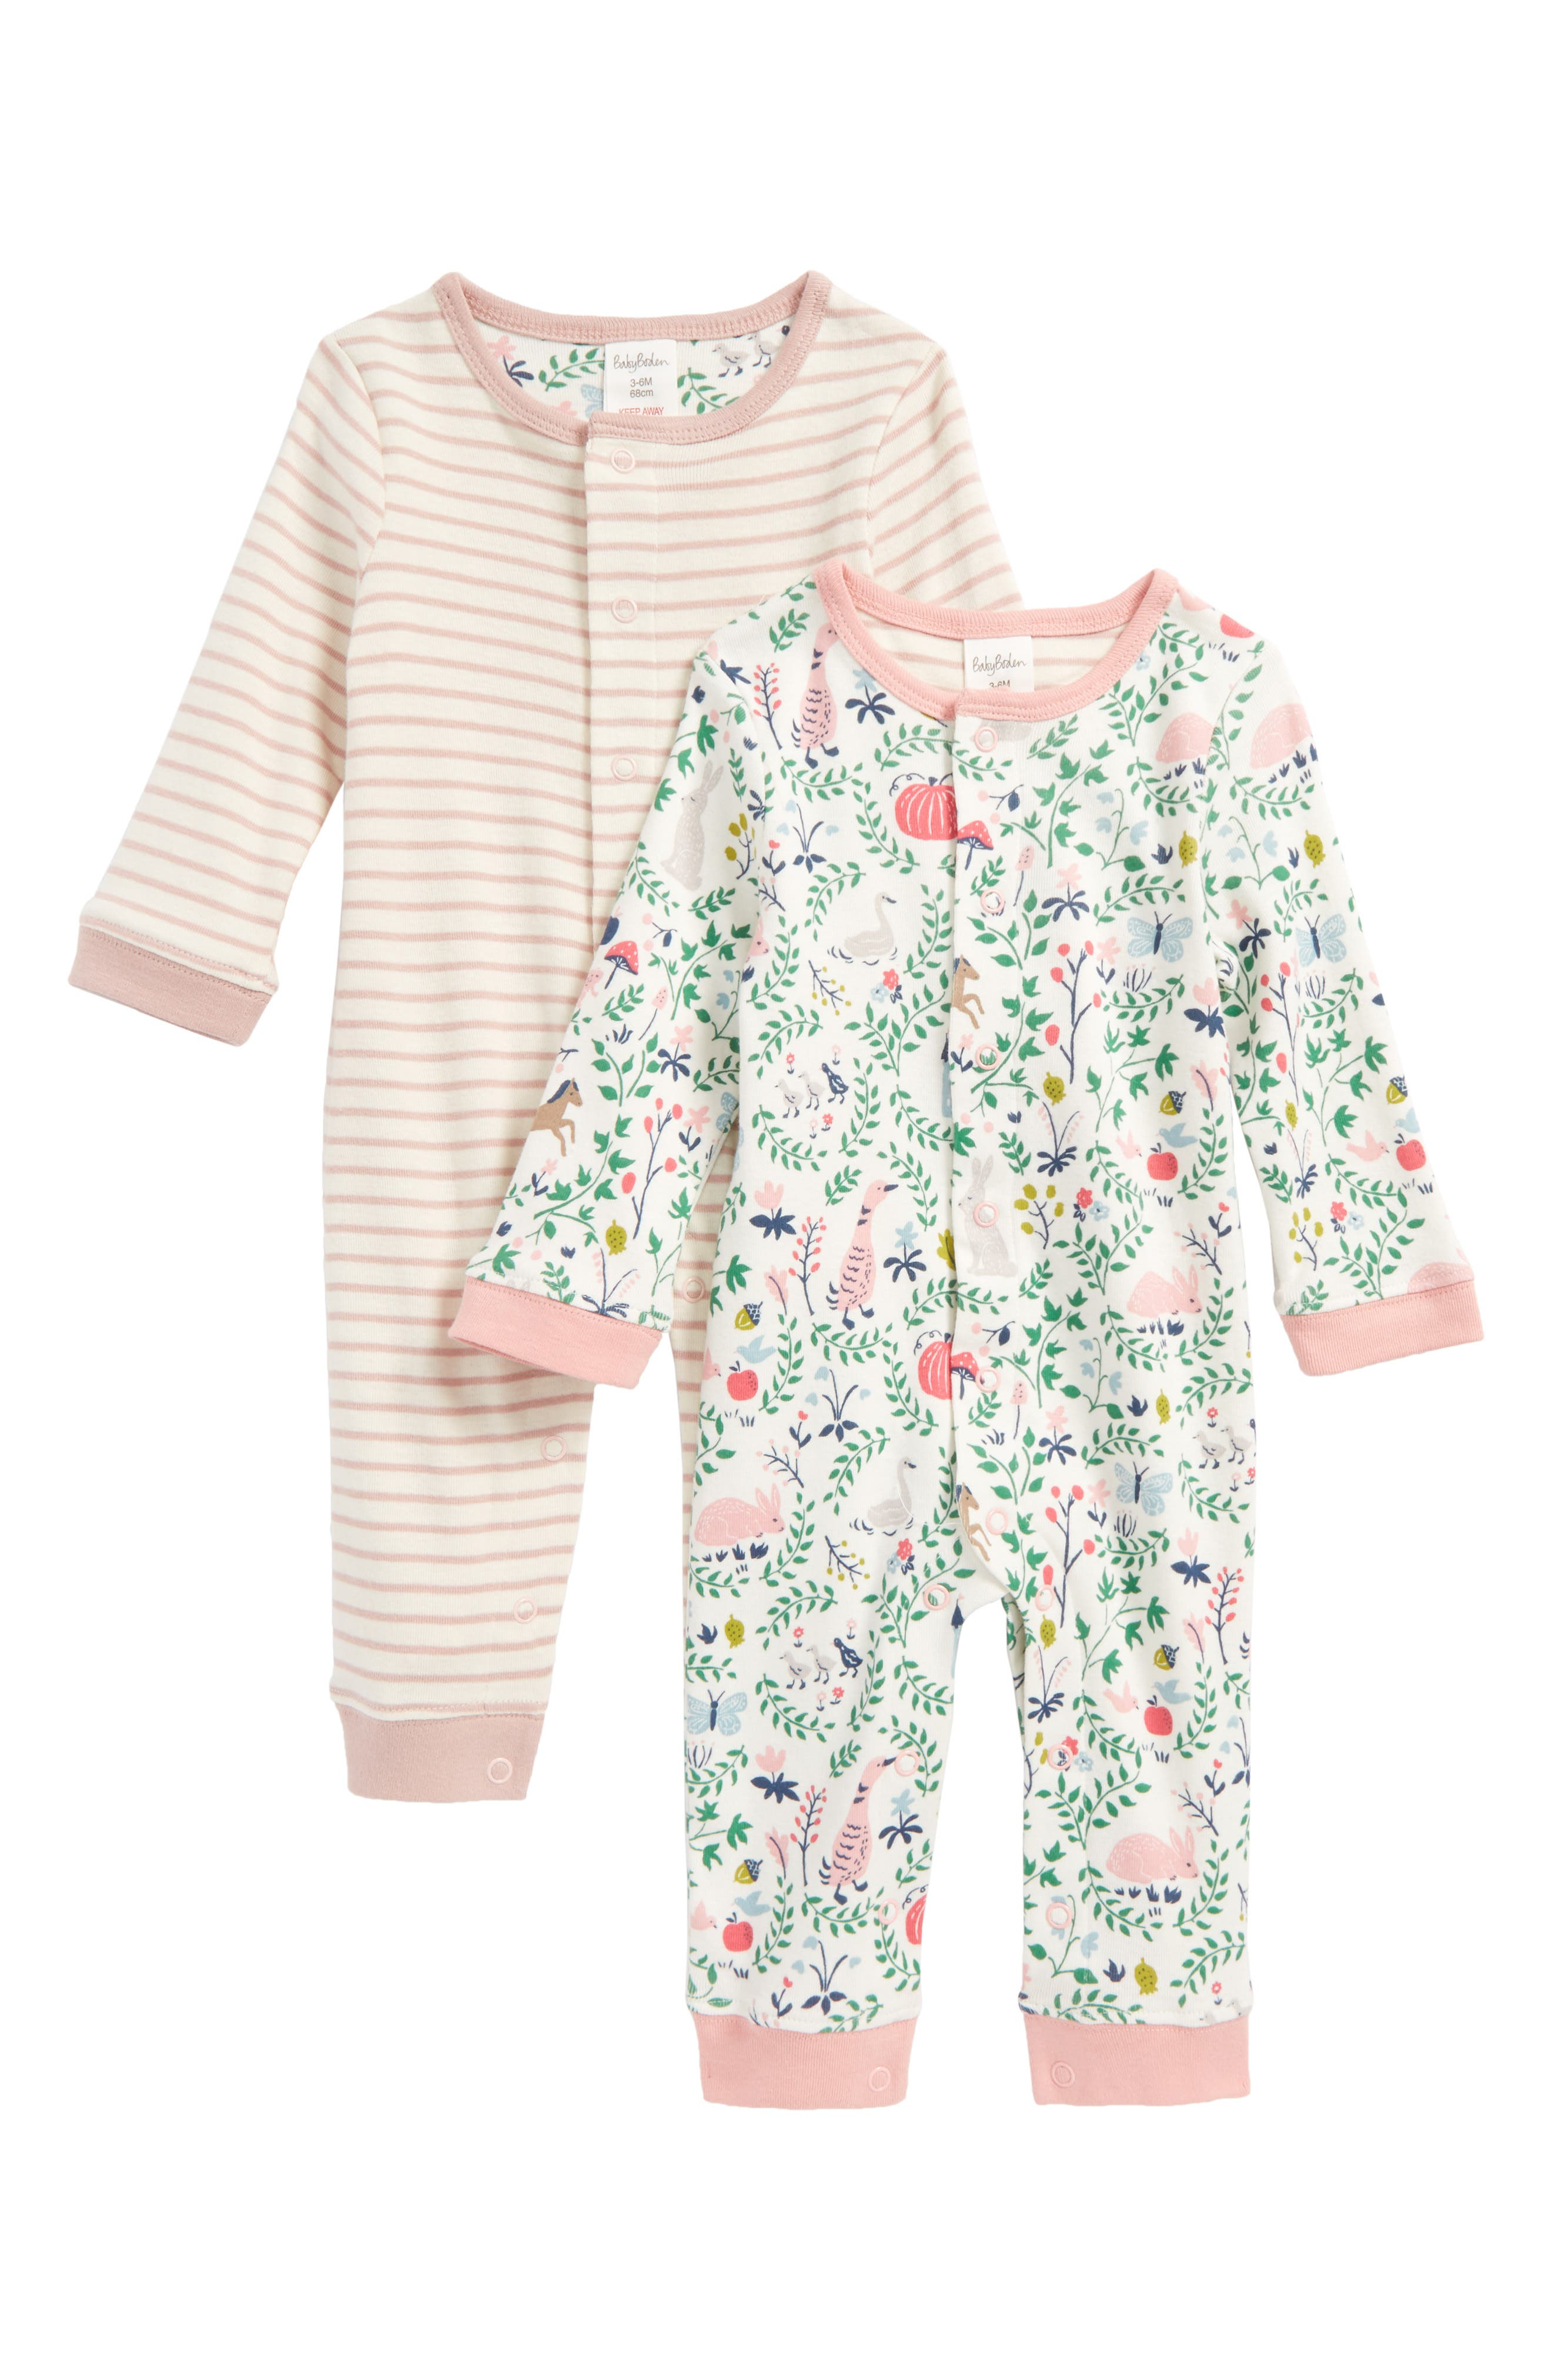 Mini Boden Set of 2 Rompers (Baby Girls)